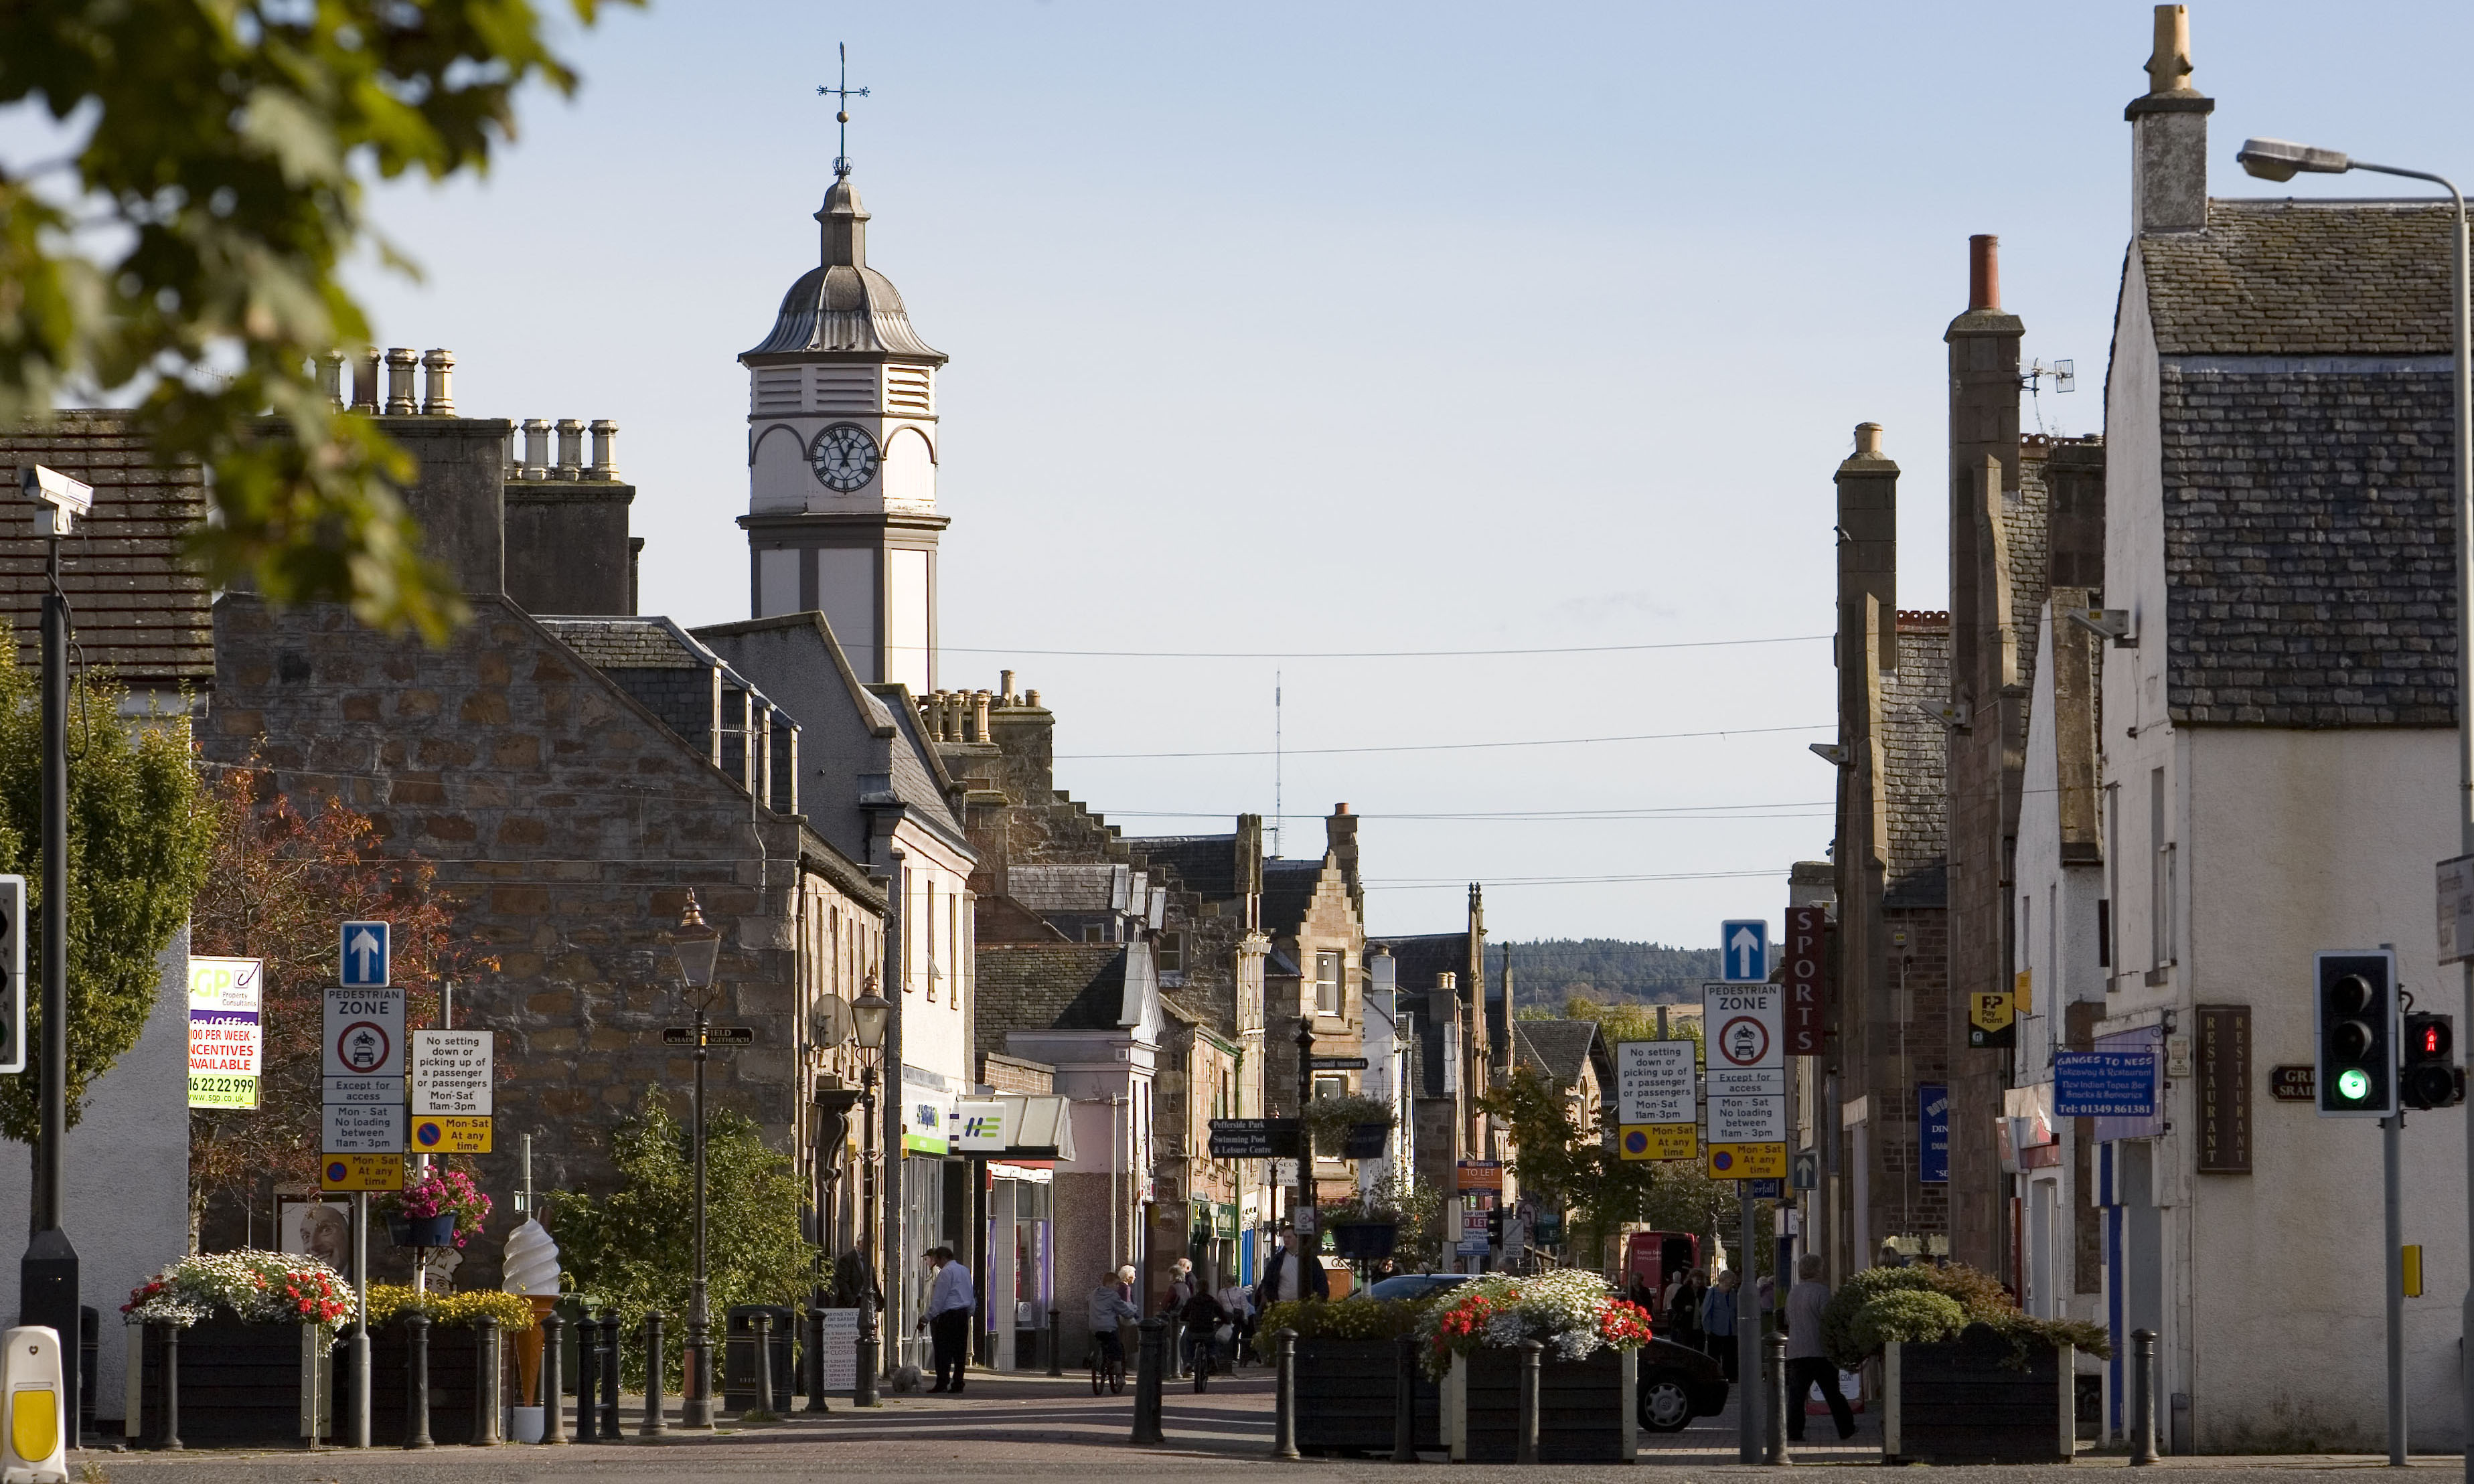 Town centre of Dingwall with the clock tower in the foreground.